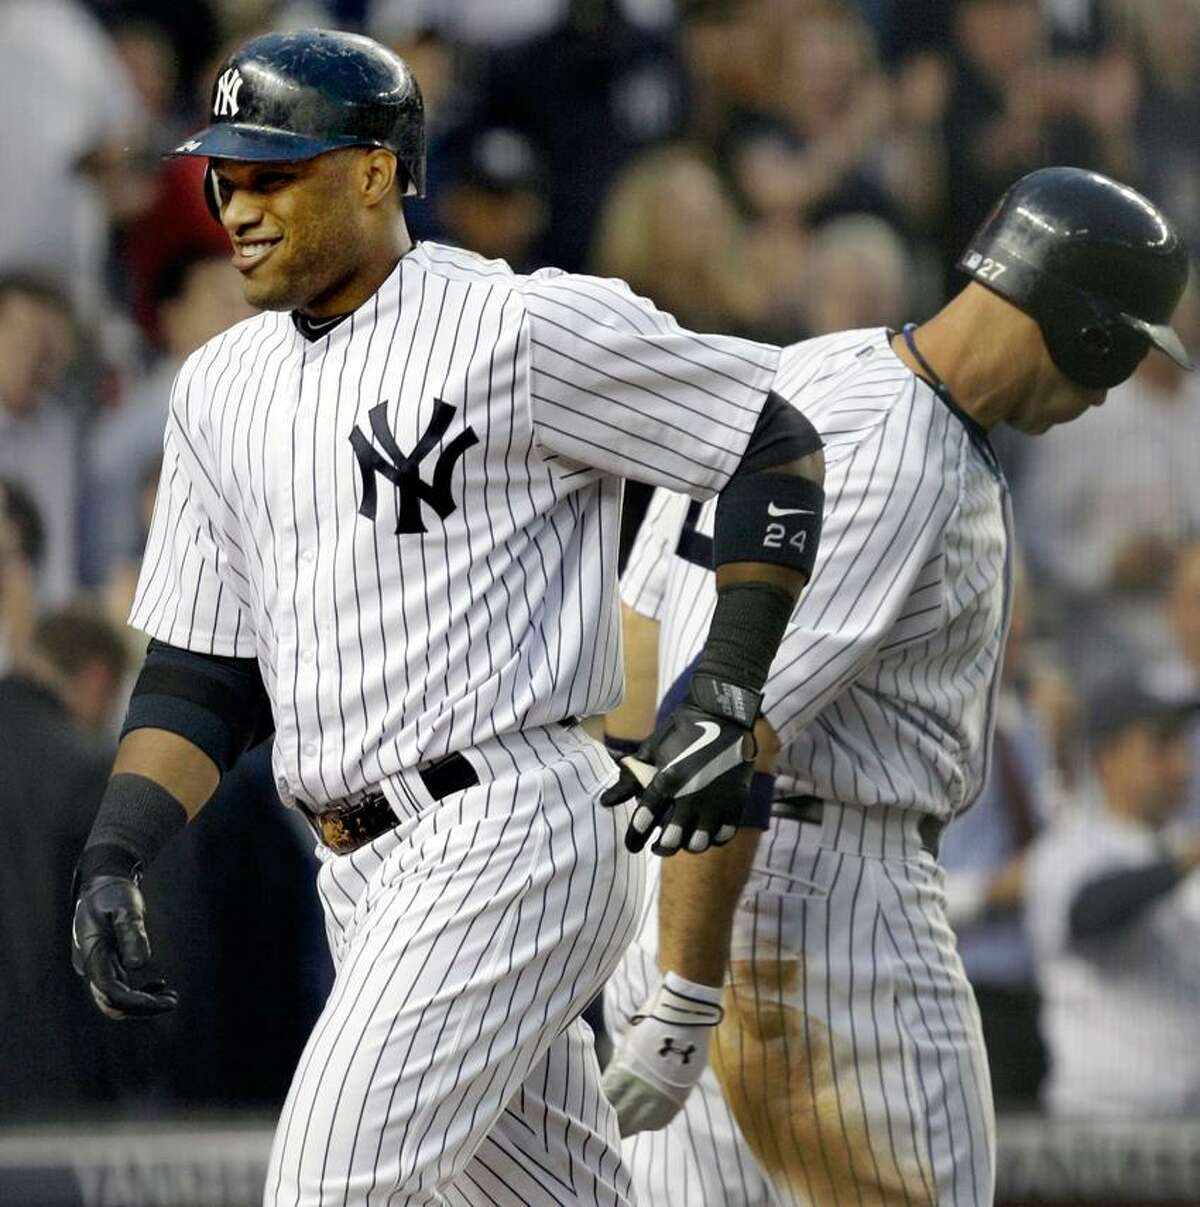 New York Yankees' Robinson Cano smiles heading to the dugout after hitting a solo home run during their baseball game in New York, Tuesday, May 22, 2012. The Yankees on-deck batter Raul Ibanez is at right. (AP Photo/Kathy Willens)